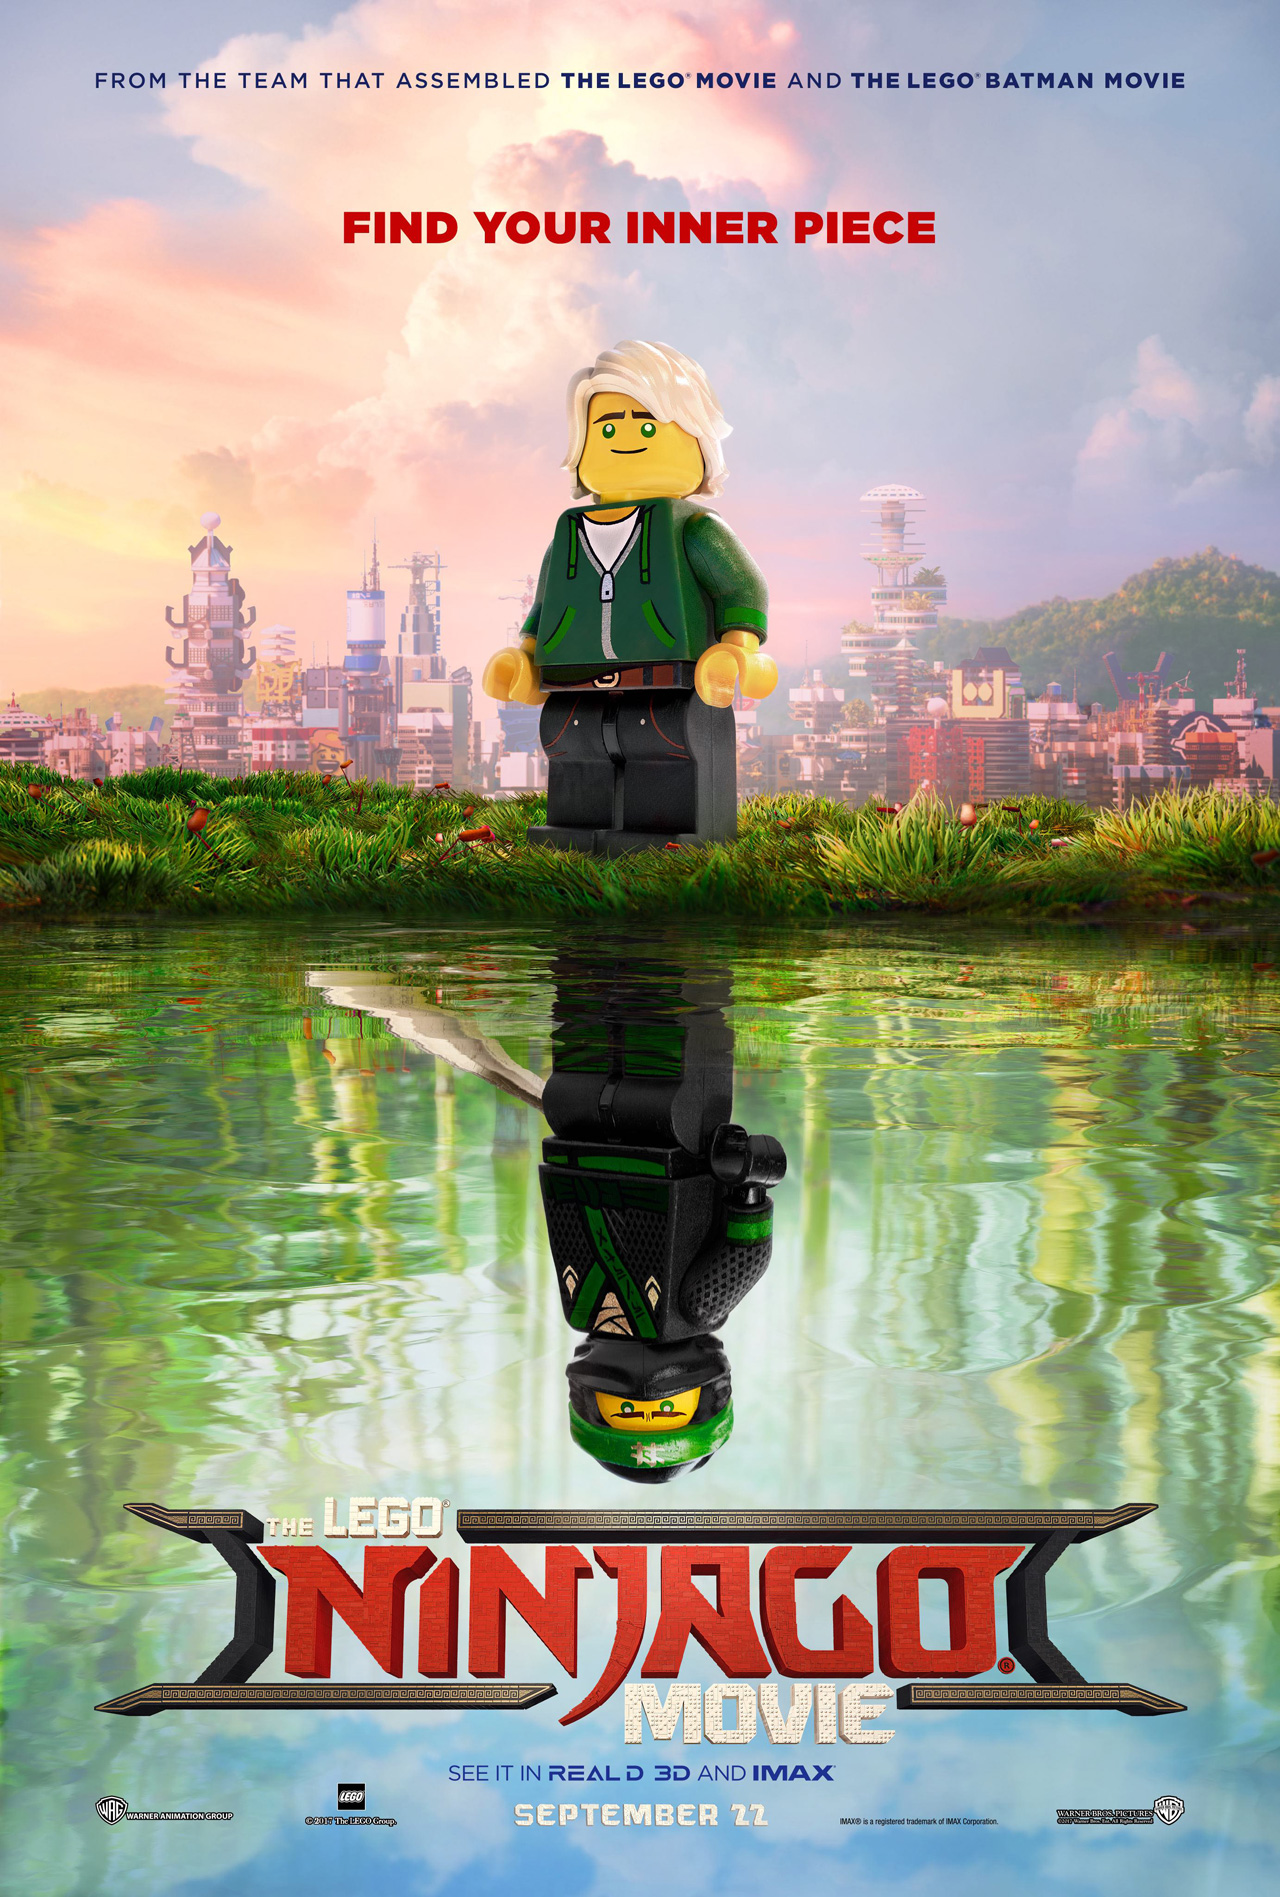 ¡Chequen el divertido trailer de Lego Ninjago Movie!